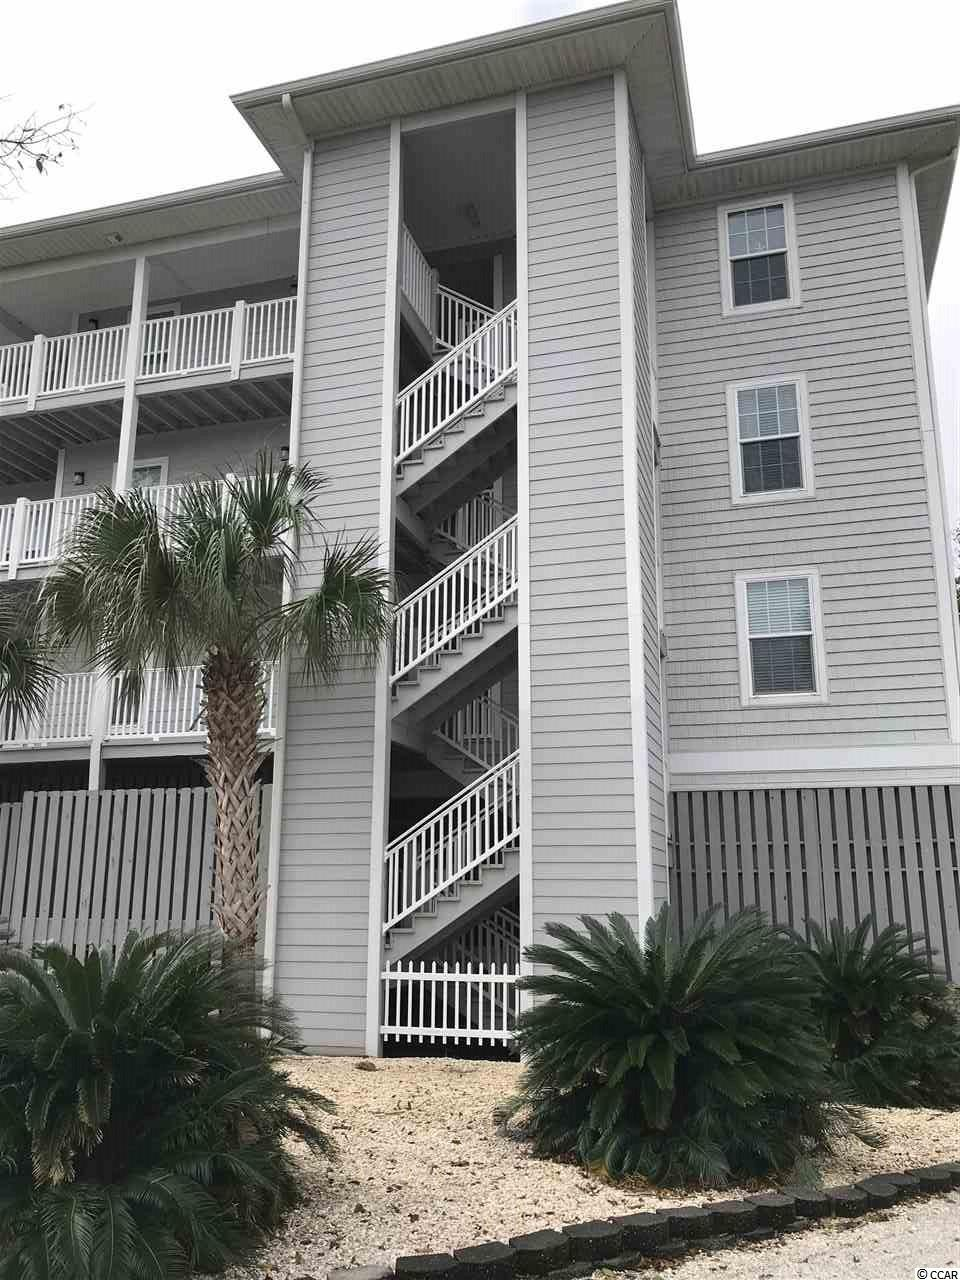 Move in ready 2 bedroom condo in the heart of Surfside Beach. Building is located across the street from the town library, tennis courts, playground, dog park etc. and walking distance to the beach. The unit has beautiful Brazilian Tiger Wood floors, the large master bedroom has dual custom closets, full size washer and dryer in hallway closet. Parking under building for your car and golf cart, additional parking on grounds. Both bathrooms have been redone with beautiful tiled showers. The screened in porch that overlooks the pool also has storage area and there is a common locked storage area under the building for owners. Measurements are not guaranteed and are buyers responsibility to verify.